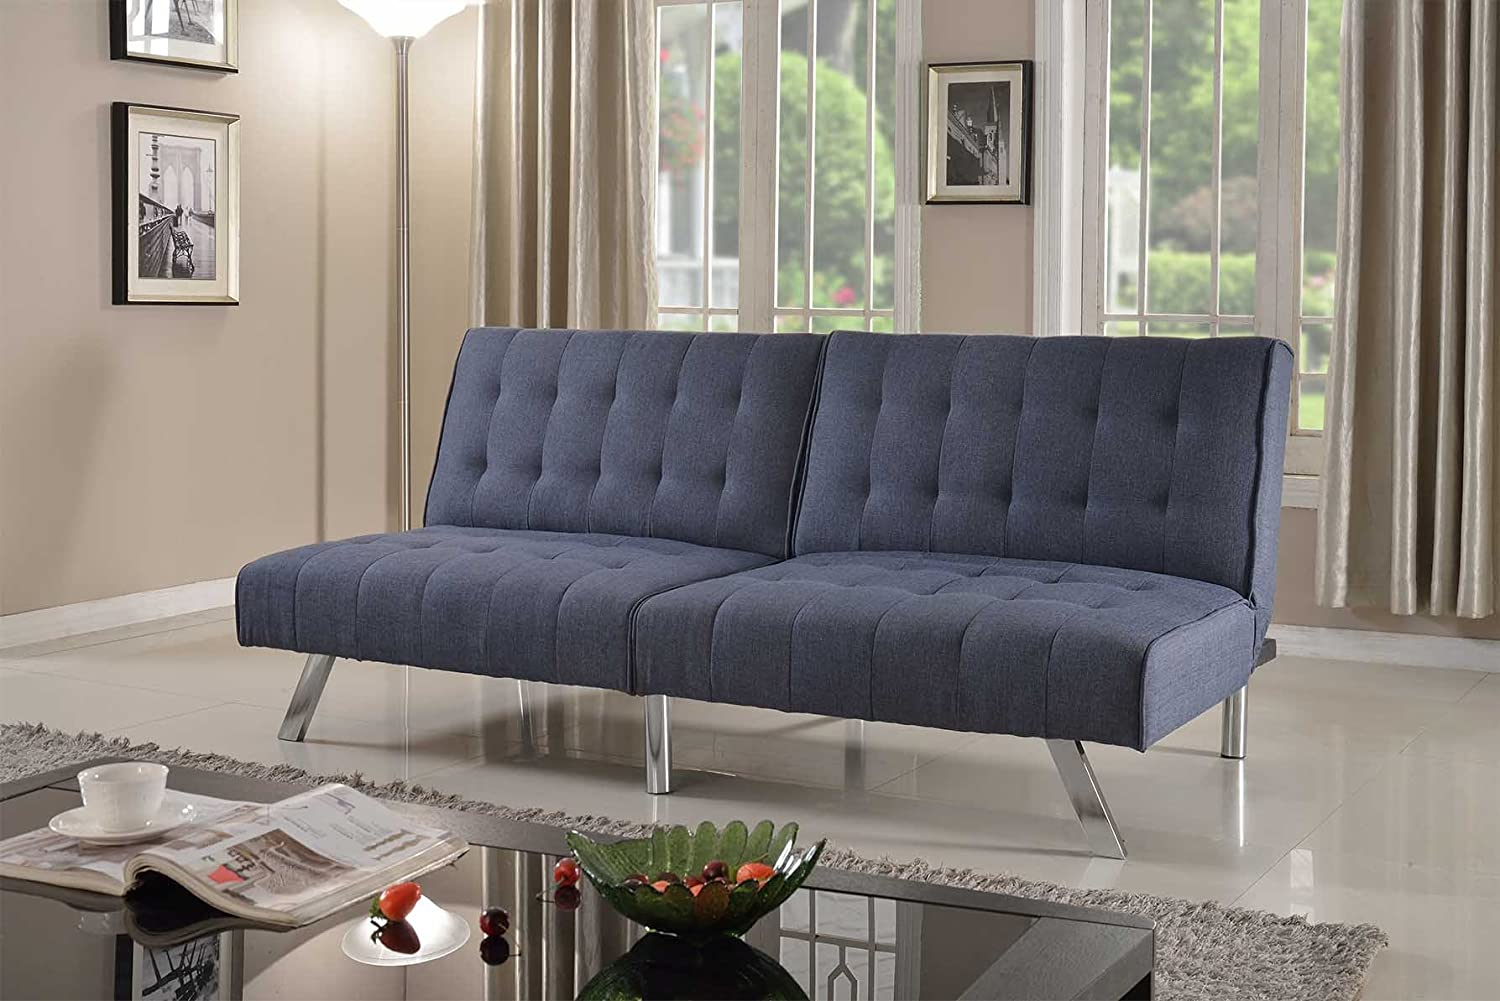 Best Sleeper Sofa 2020.Top 10 Best Sleeper Sofa Beds 2019 2020 On Flipboard By